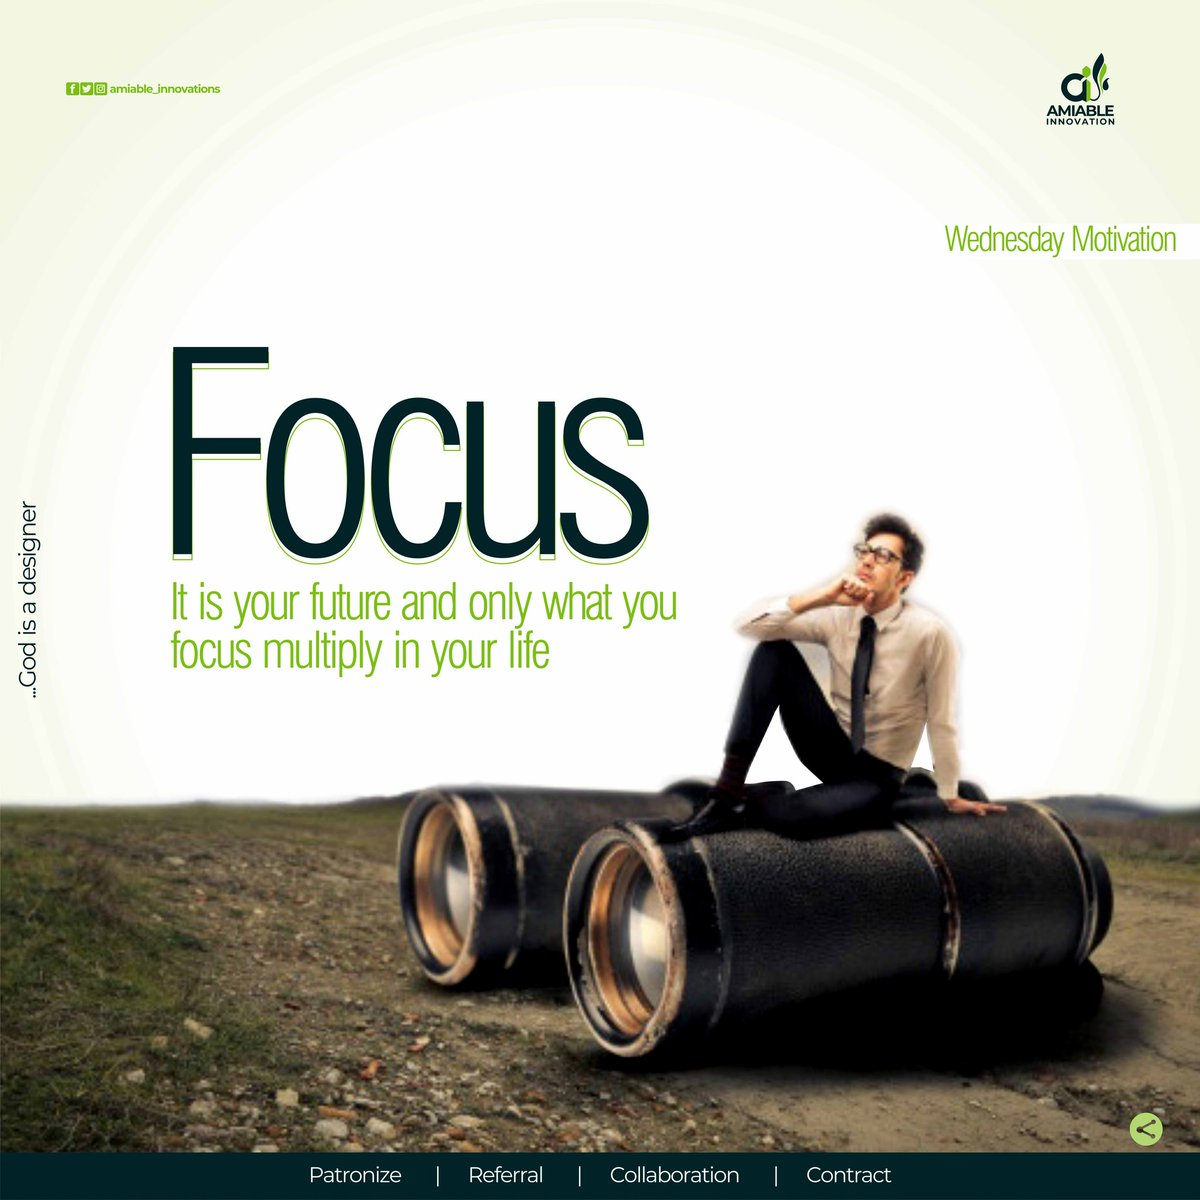 """Our focus is our future and what we focus on will multiply in our life."" — David DeNotaris #Amiable #Innovation  #Wednesdaymotivations #Focus #Elegance #Greatness #Multiply"